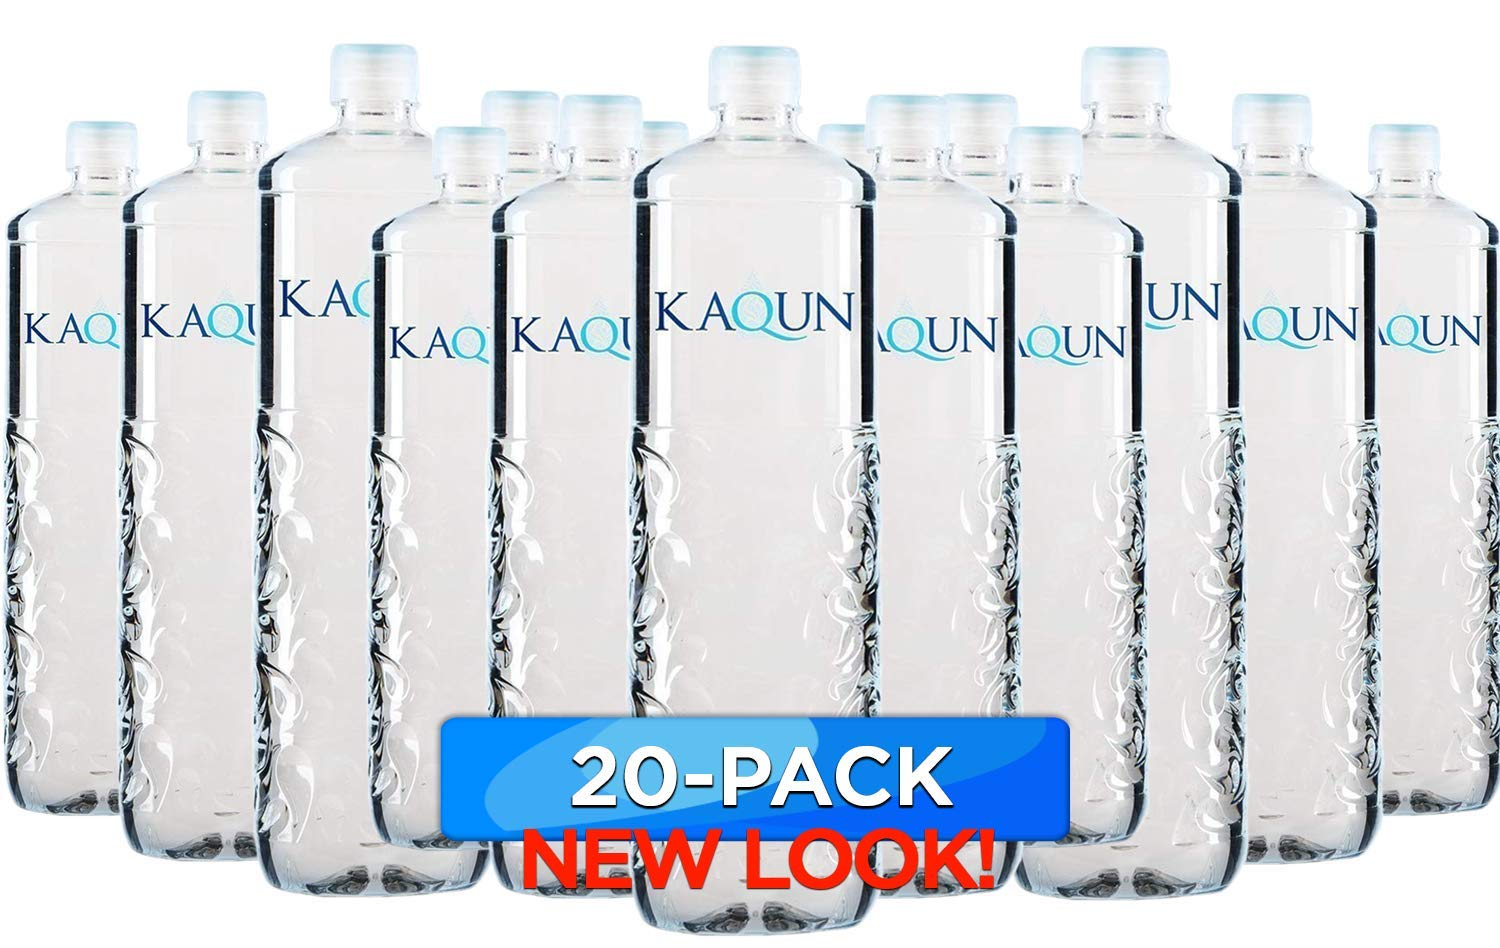 KAQUN Water 20-Pack, Oxygenated & Refreshing, Oxygen Infused Bottled Drinking Water, Chemical Free, Detox, for Kaqun Therapy, Authorized Retailer by BodyHealth